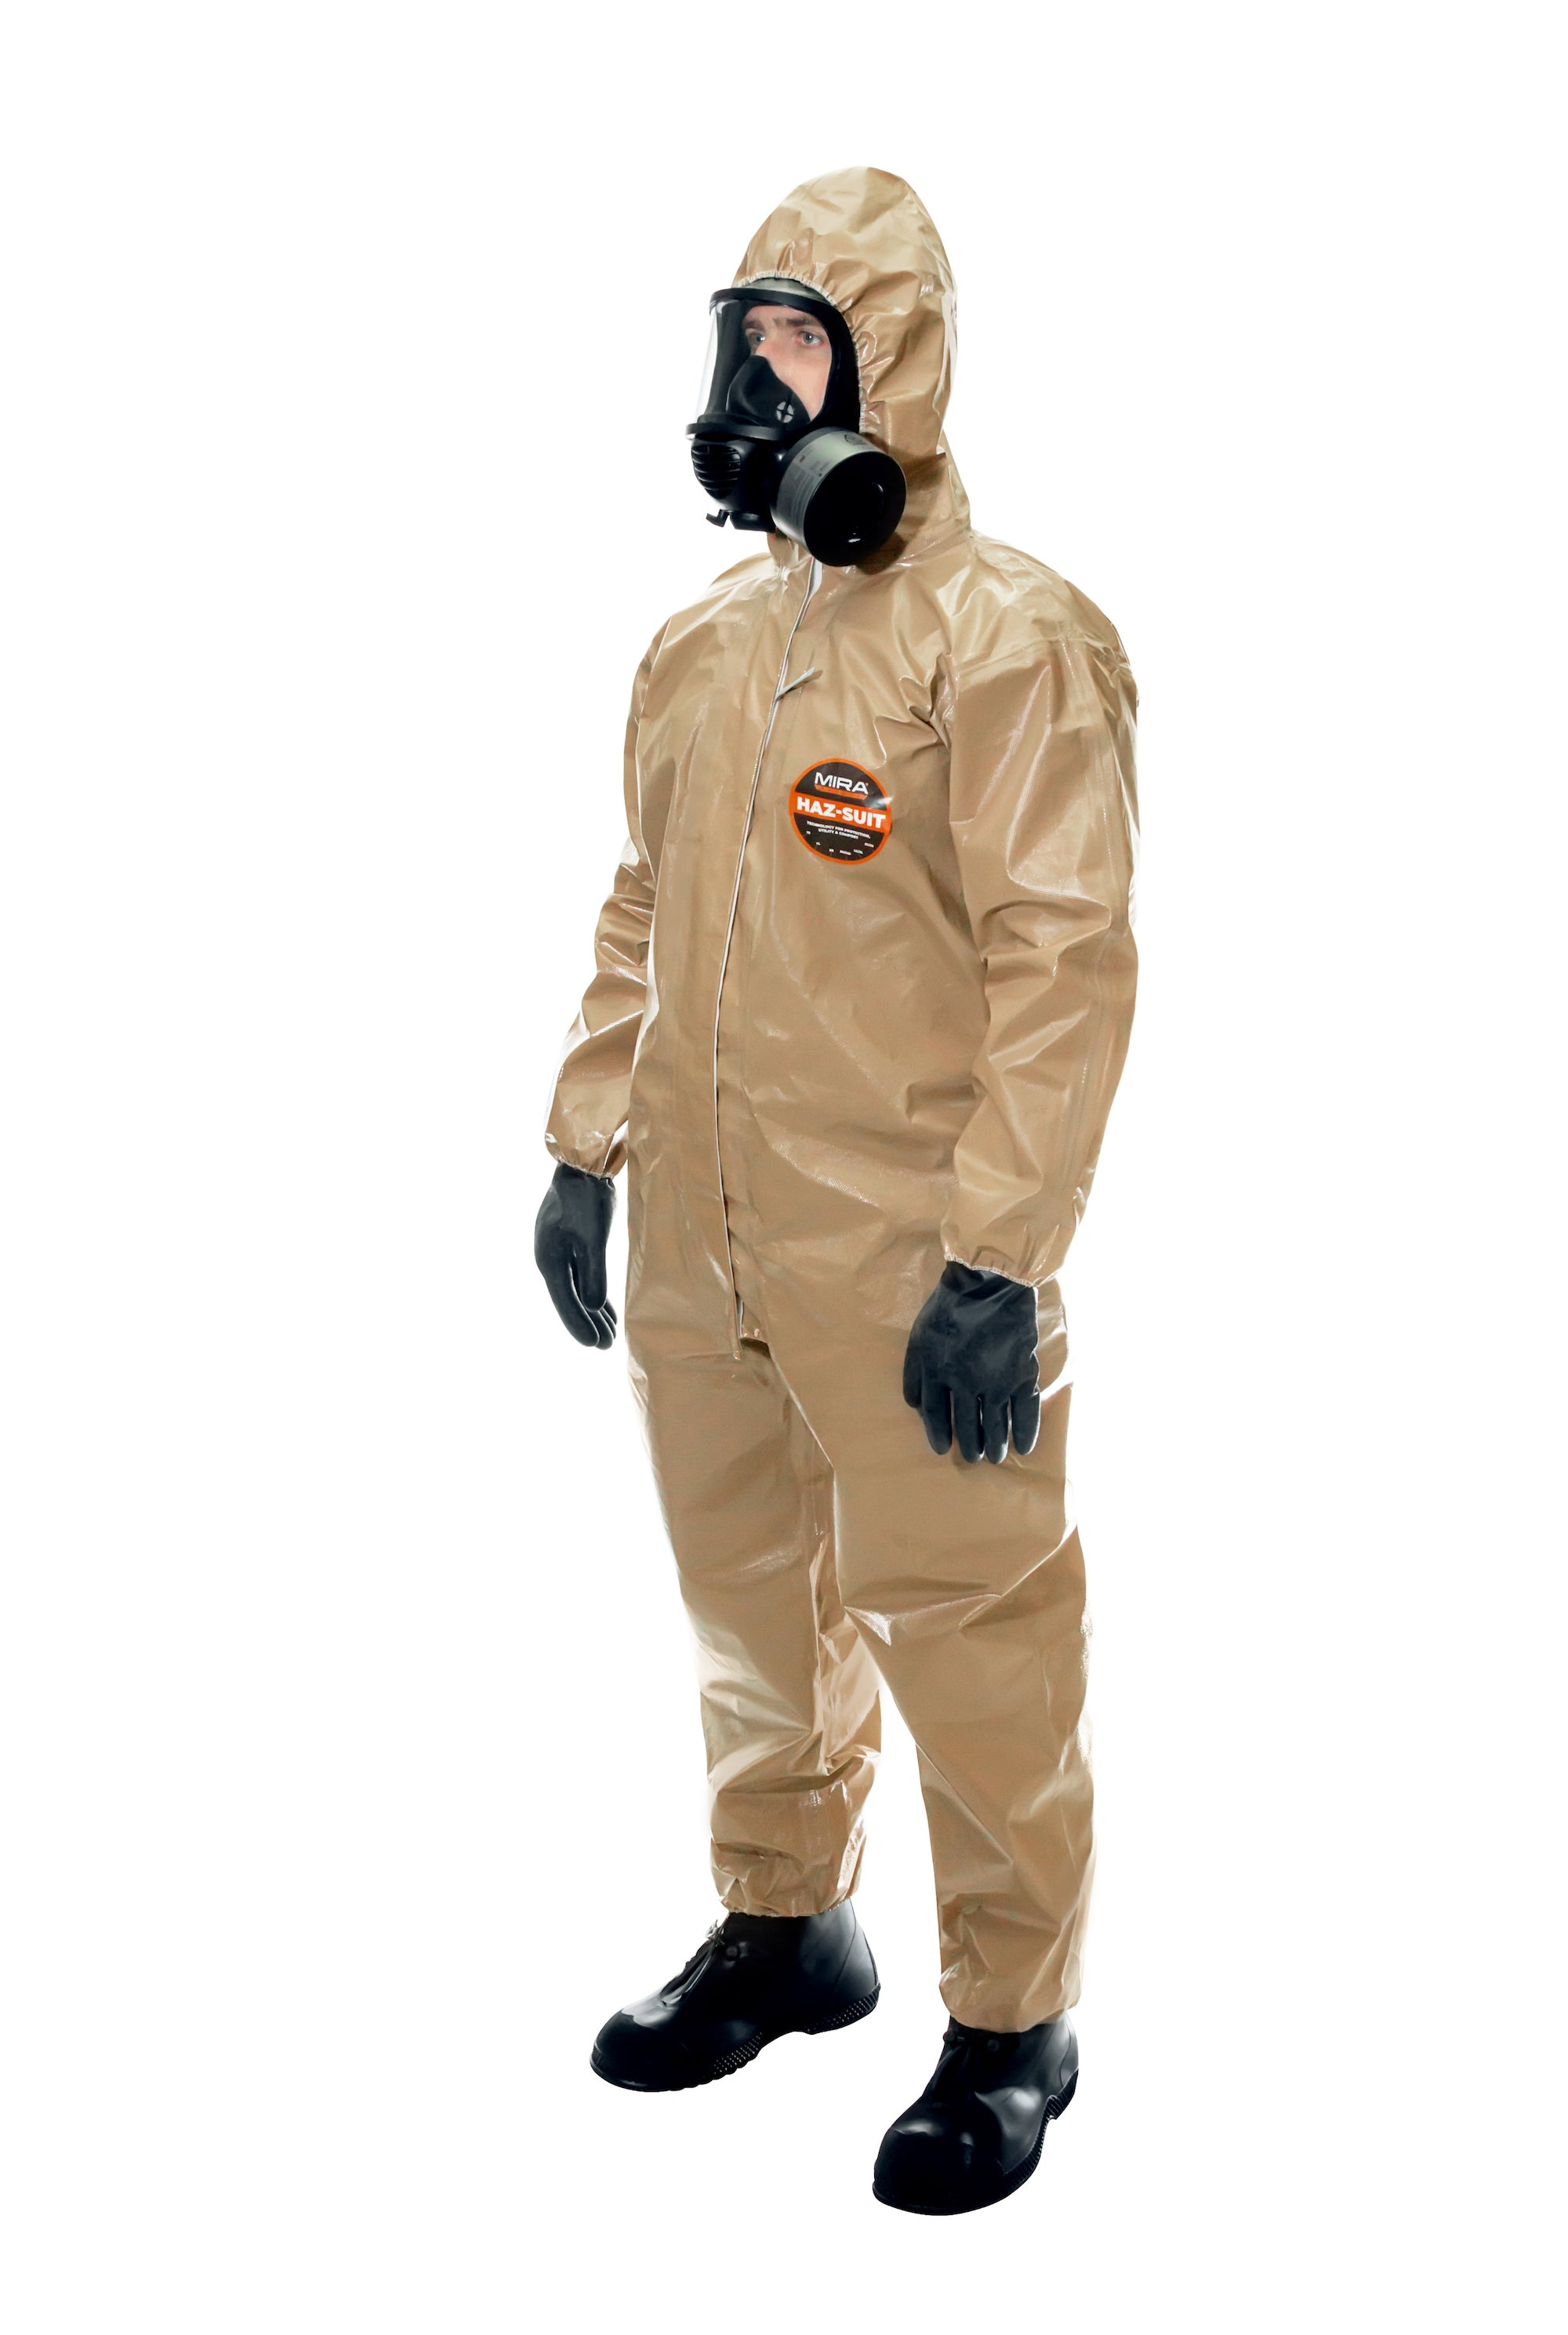 Side view of a man wearing the HAZ-SUIT HAZMAT Suit